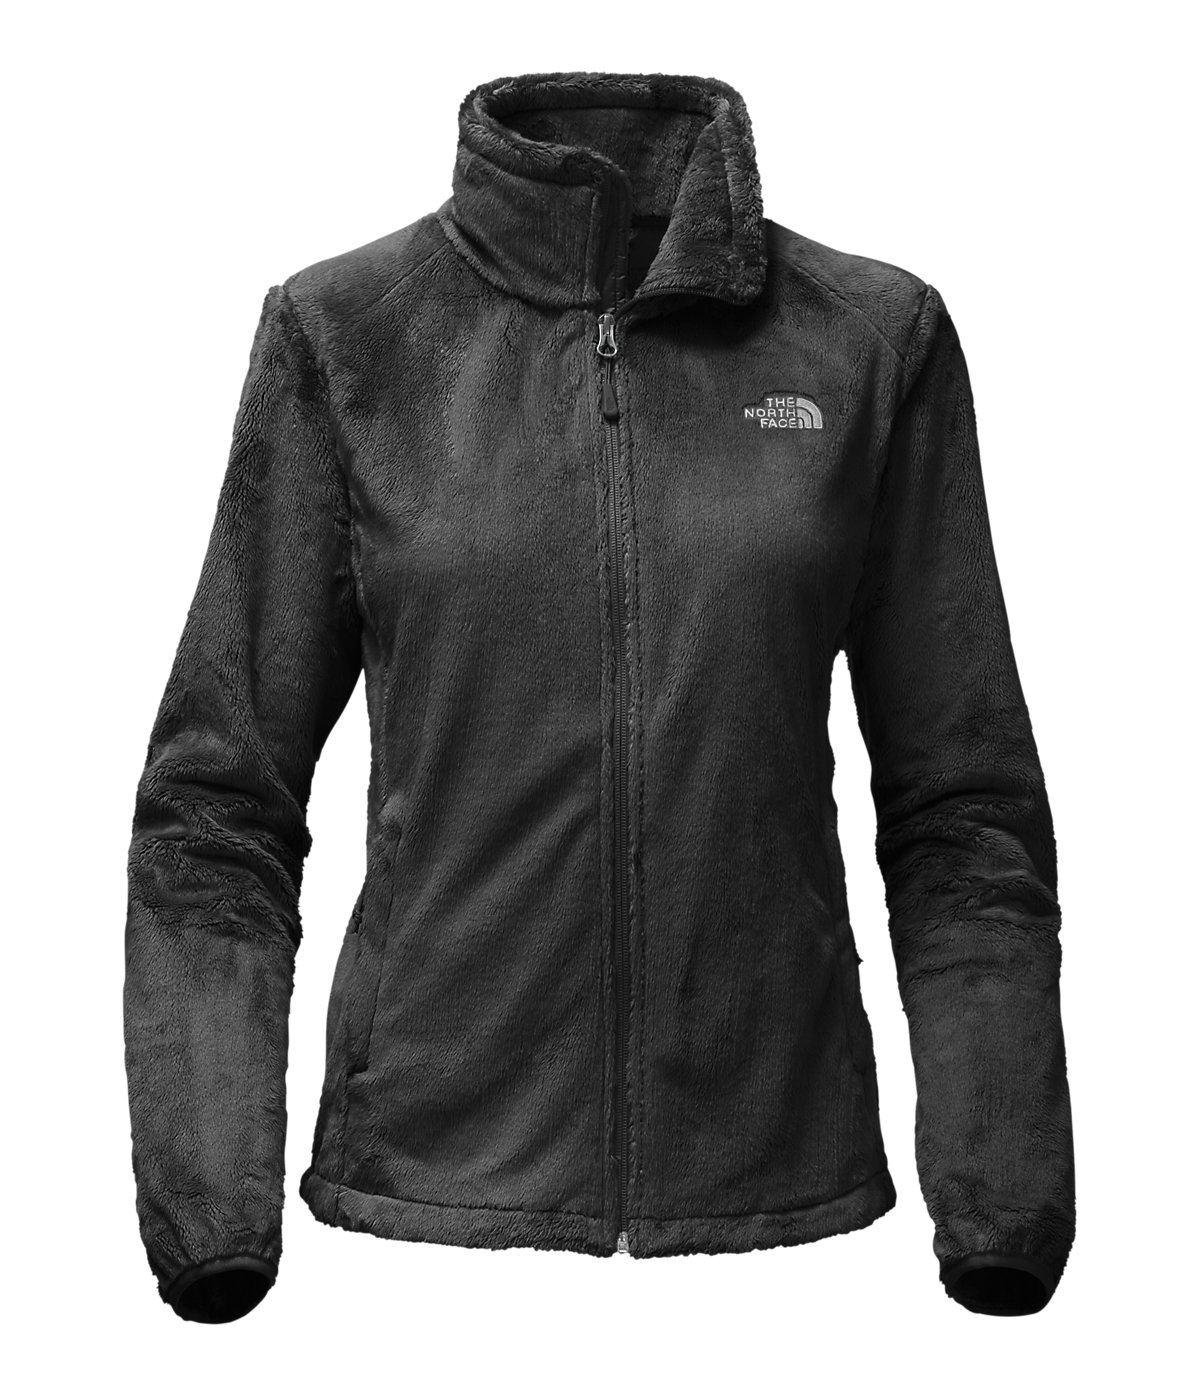 db97241c8 The North Face Women's Osito 2 Jacket